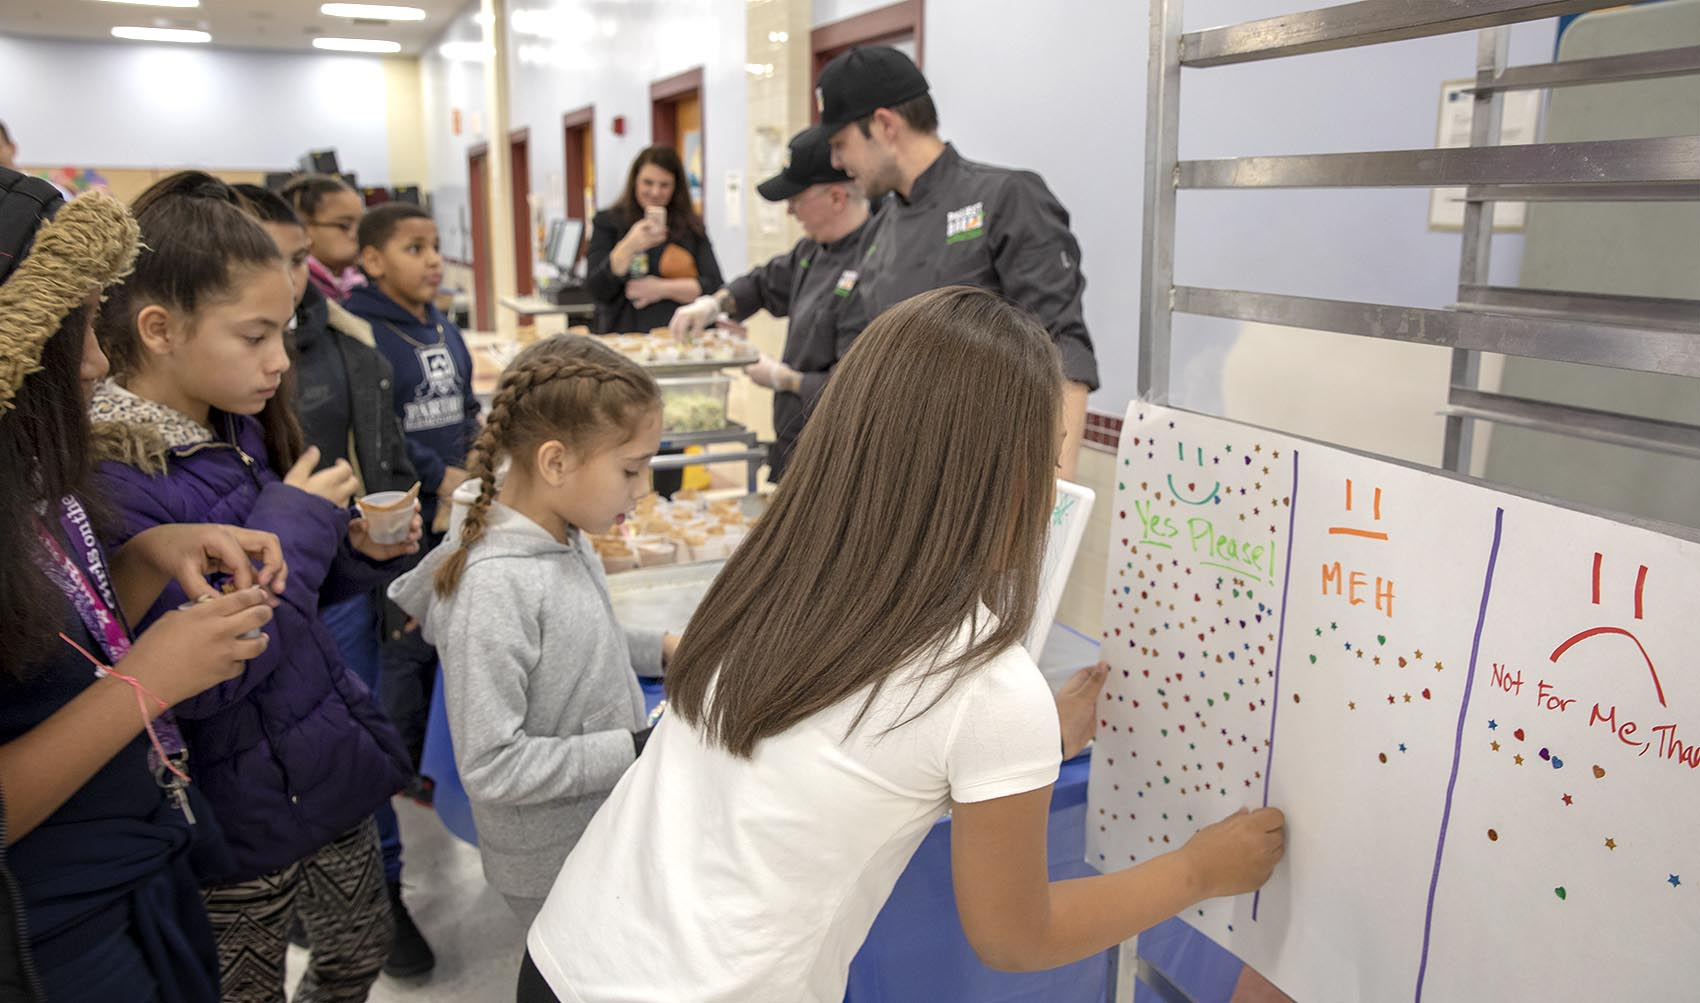 """Students at Parthum Elementary give feedback on the day's taste test. """"Yes please"""" means students loved it. """"Meh"""" and """"Not for me"""" mean Icklan needs to tweak the recipe. (Robin Lubbock/WBUR)"""